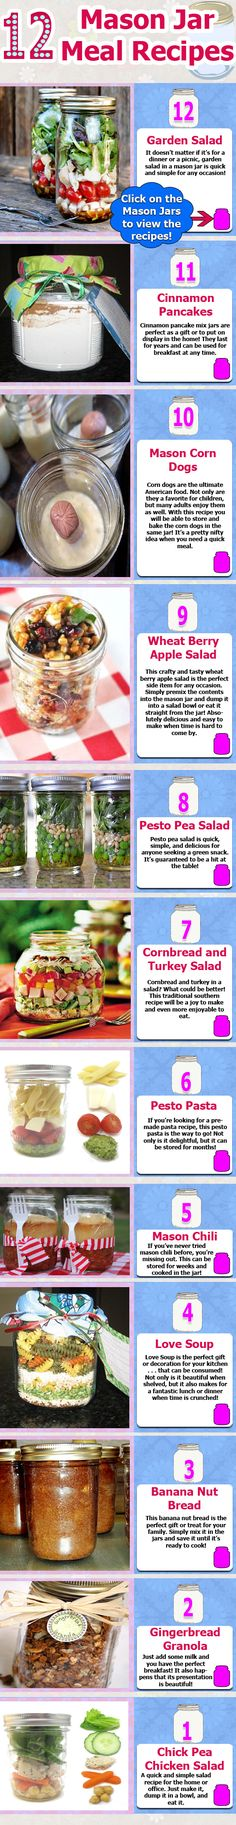 Fun jar recipes